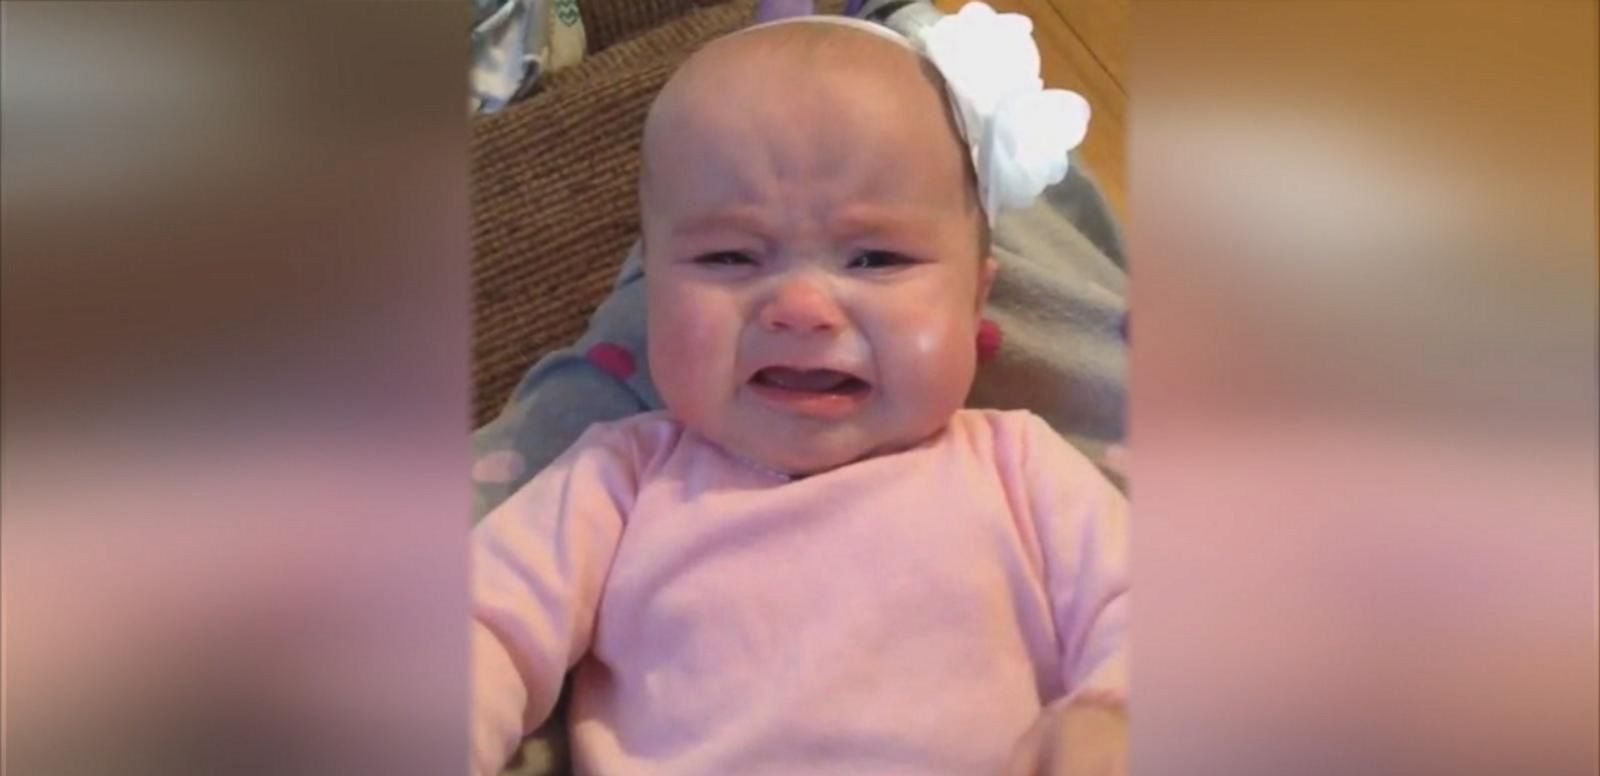 VIDEO: Taylor Swift's Song Makes This Baby Stop Crying